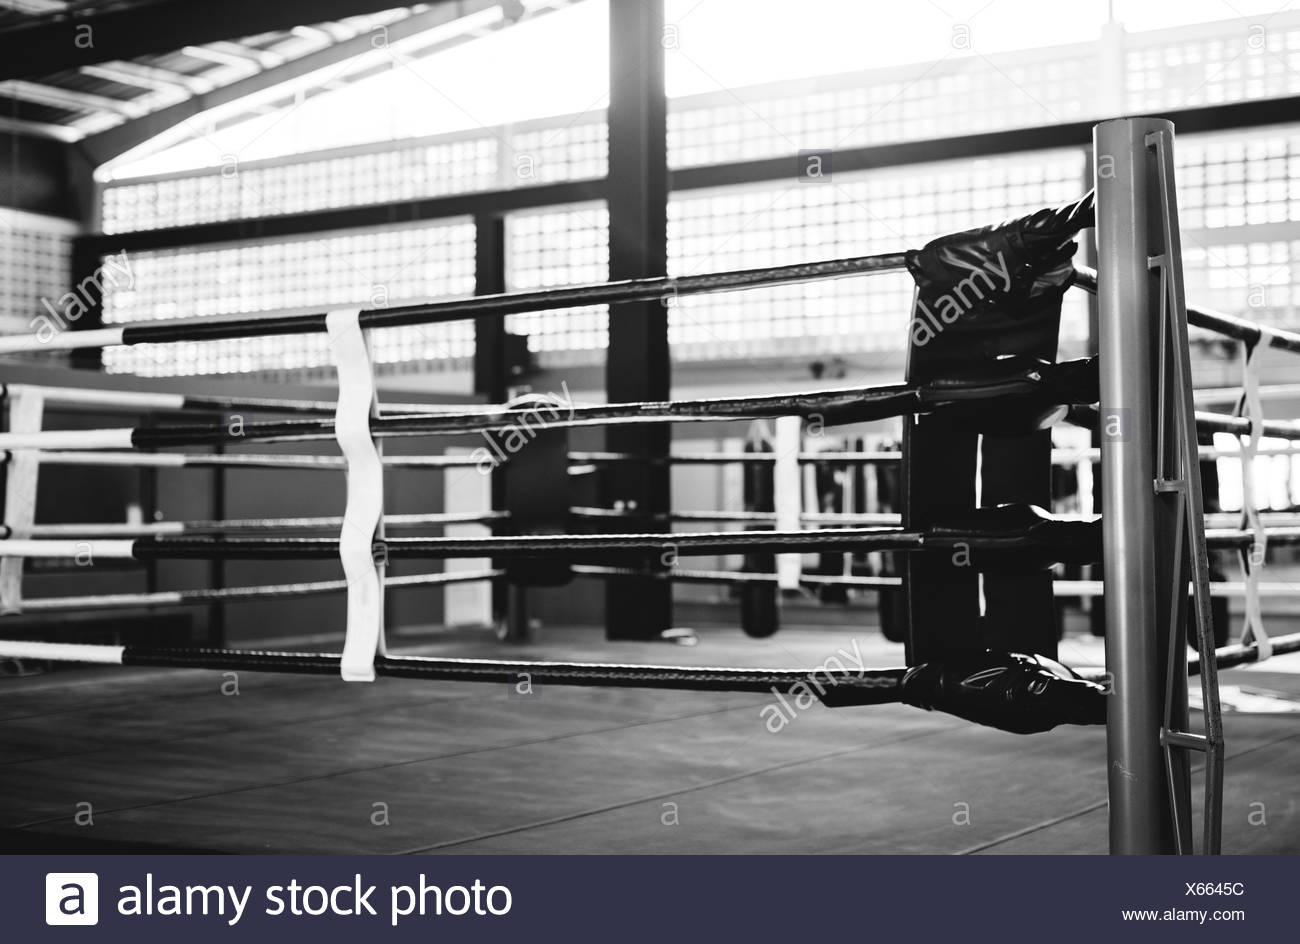 Boxing ring arena stadium fighting competitive sport concept stock image